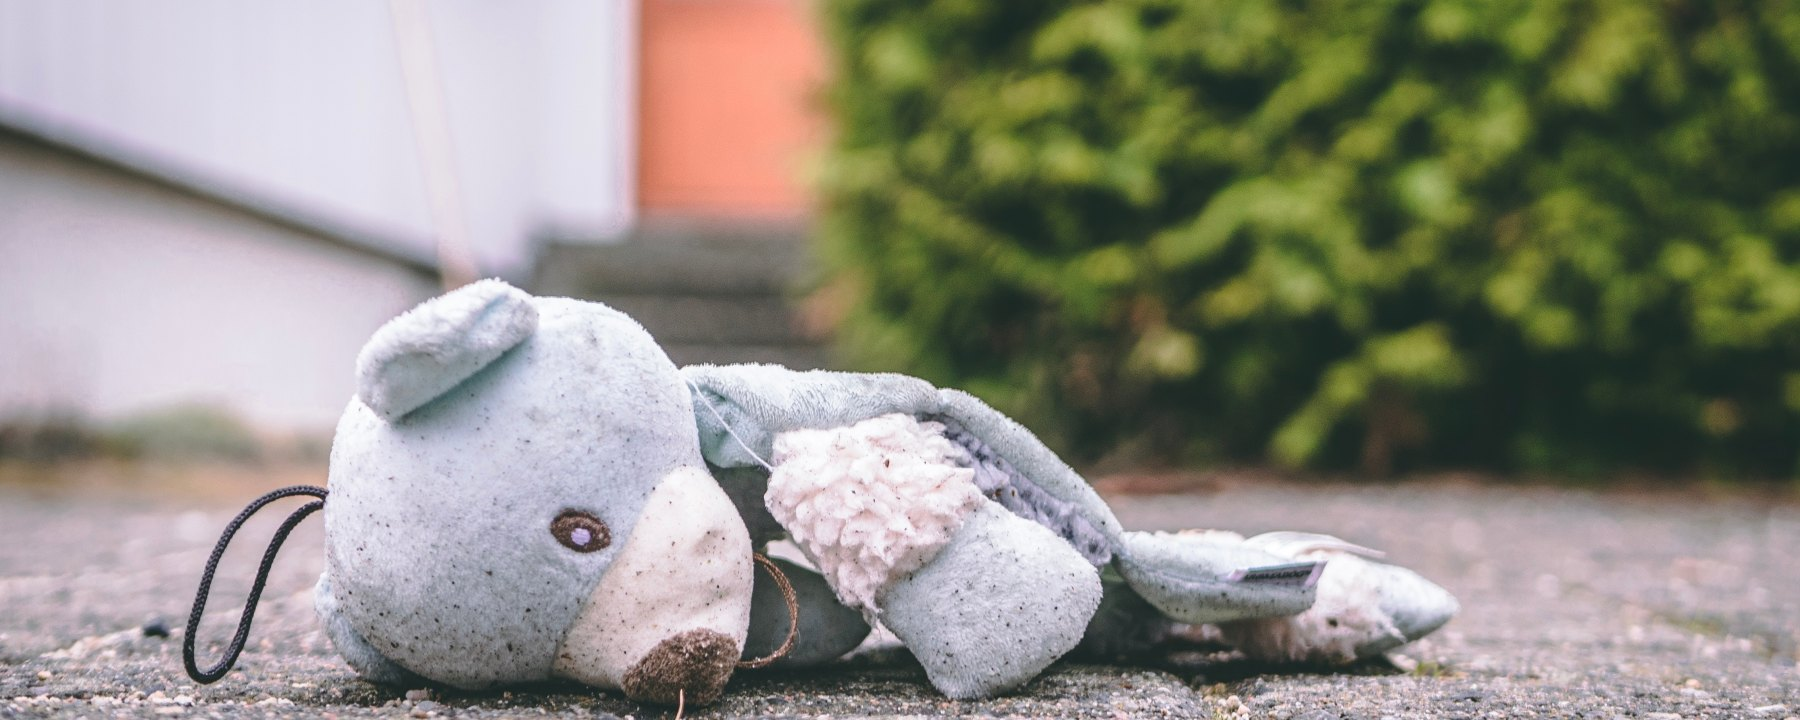 Teddy bear, lost childhood, children, sadness, sexual abuse crisis